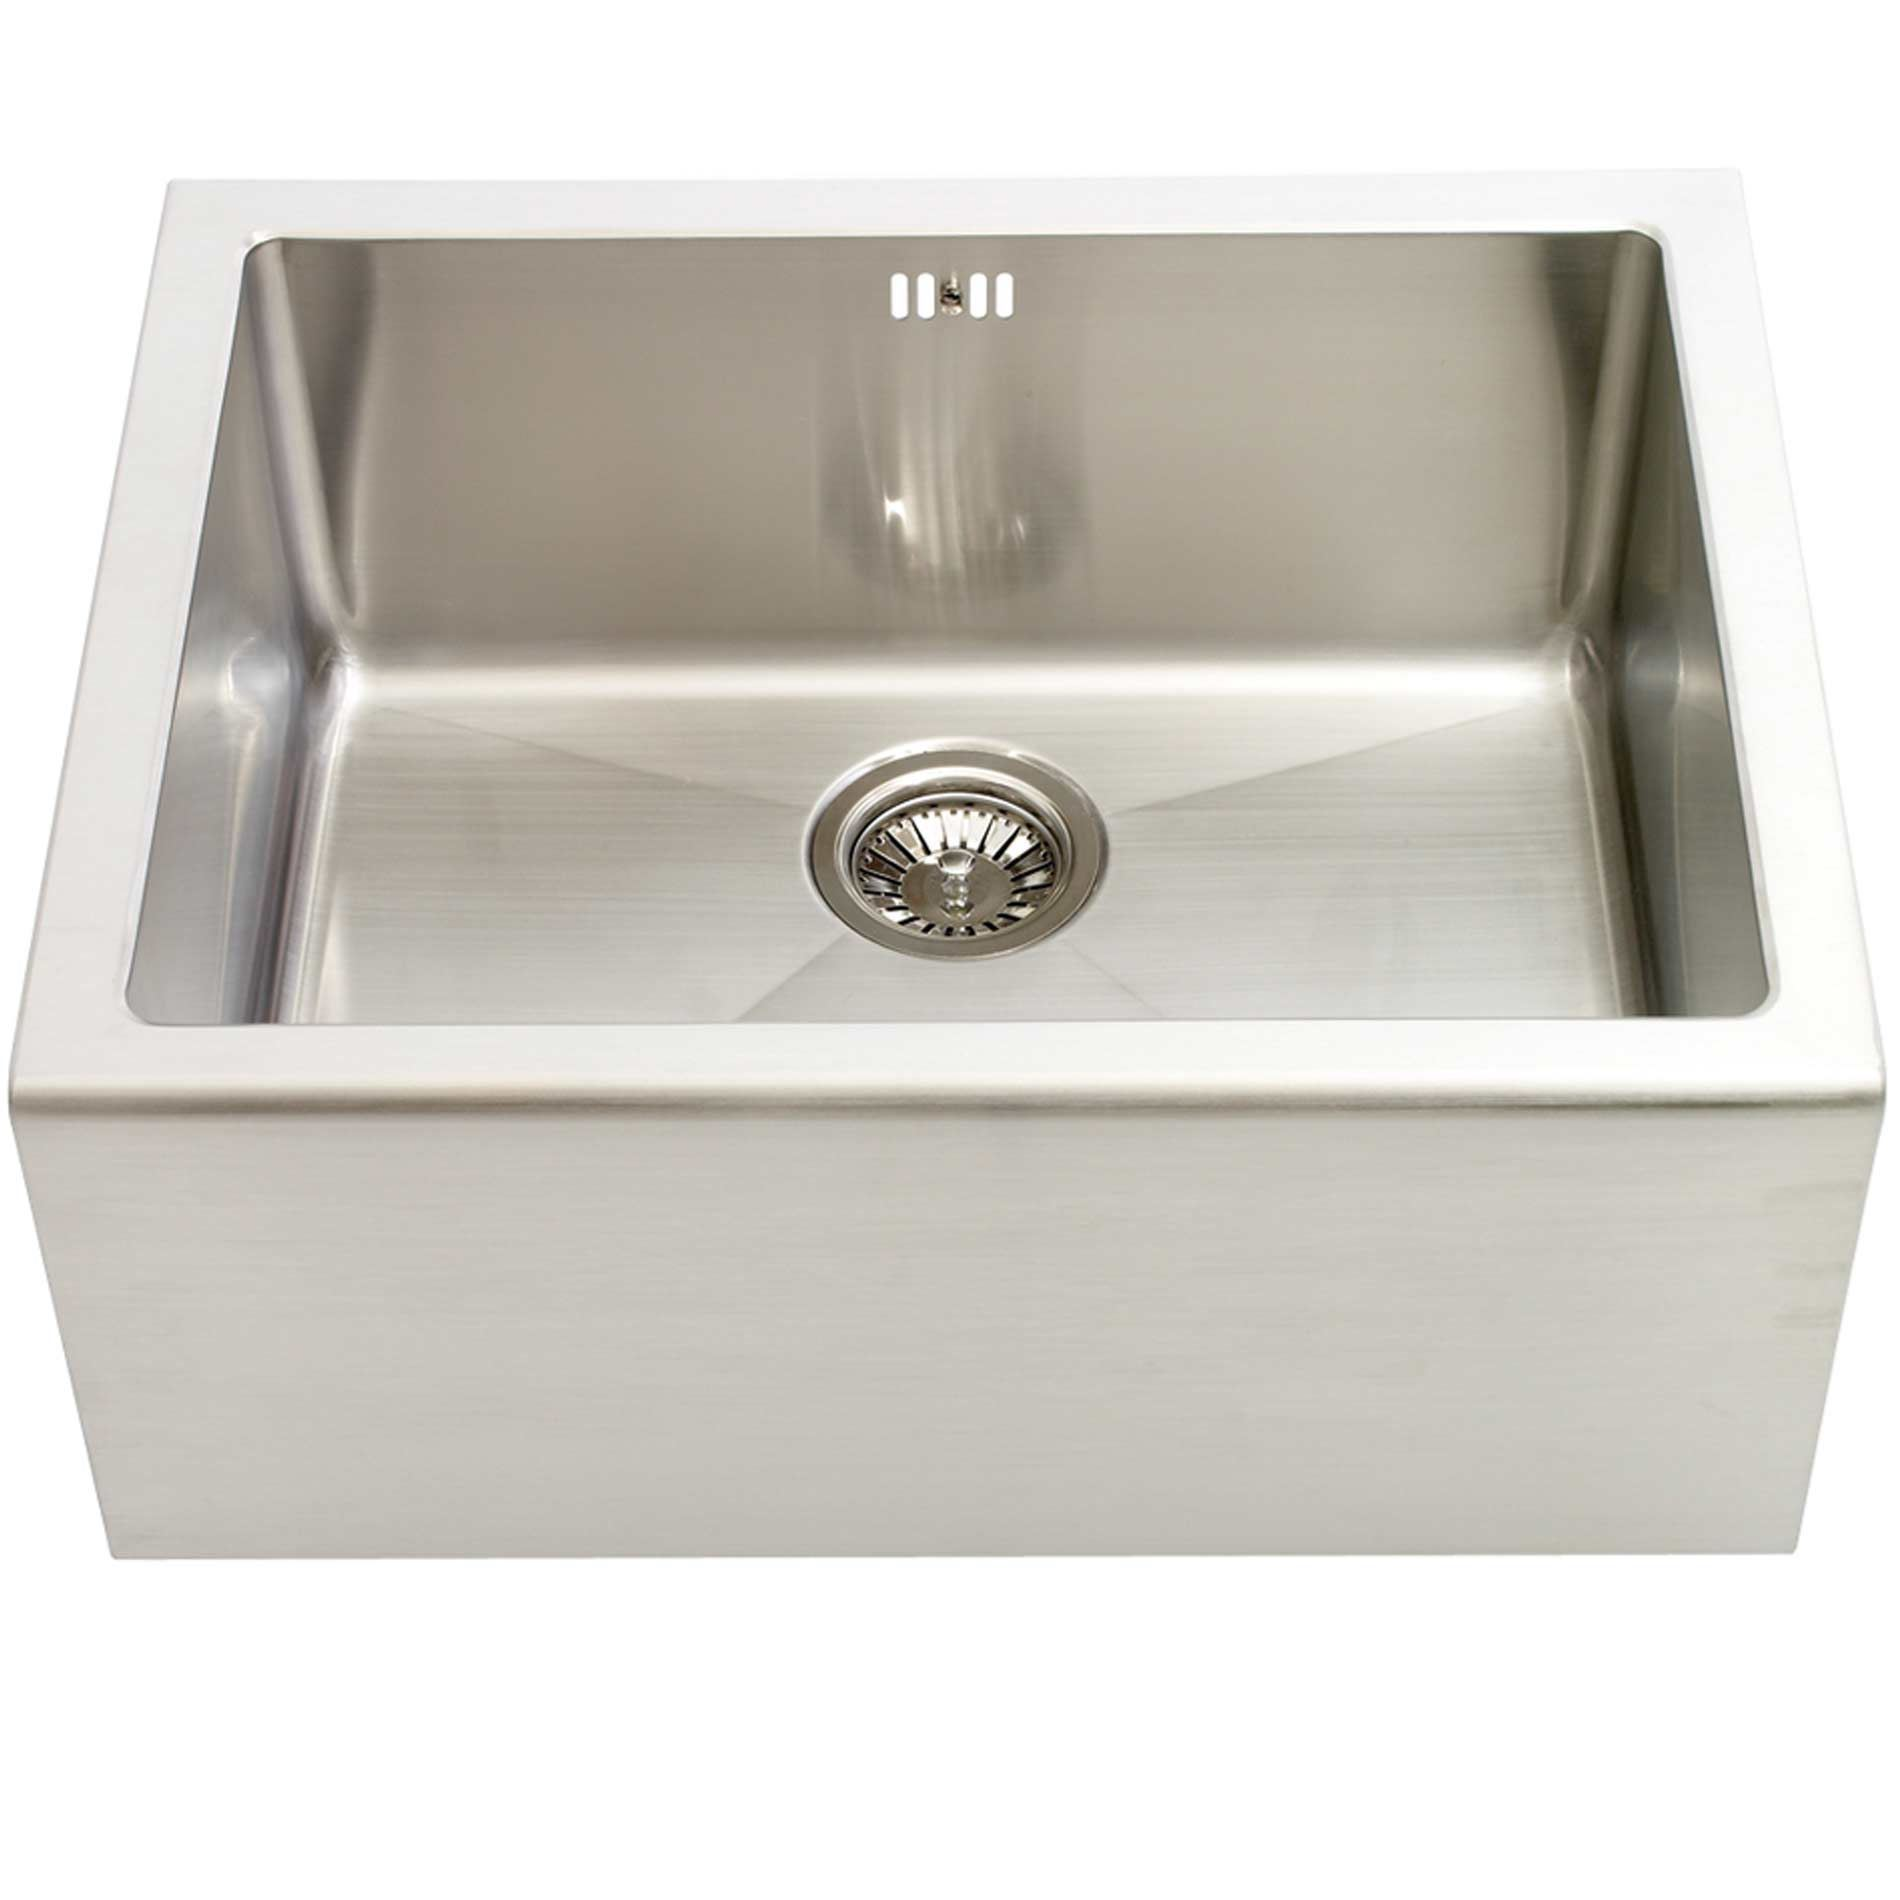 idcplg?IdcService=GET_FILE&RevisionSelectionMethod=LatestReleased&noSaveAs=1&dDocName=50000539_70179&Rendition=ZOOMIMAGE Stainless Steel Kitchen Sink Manufacturers